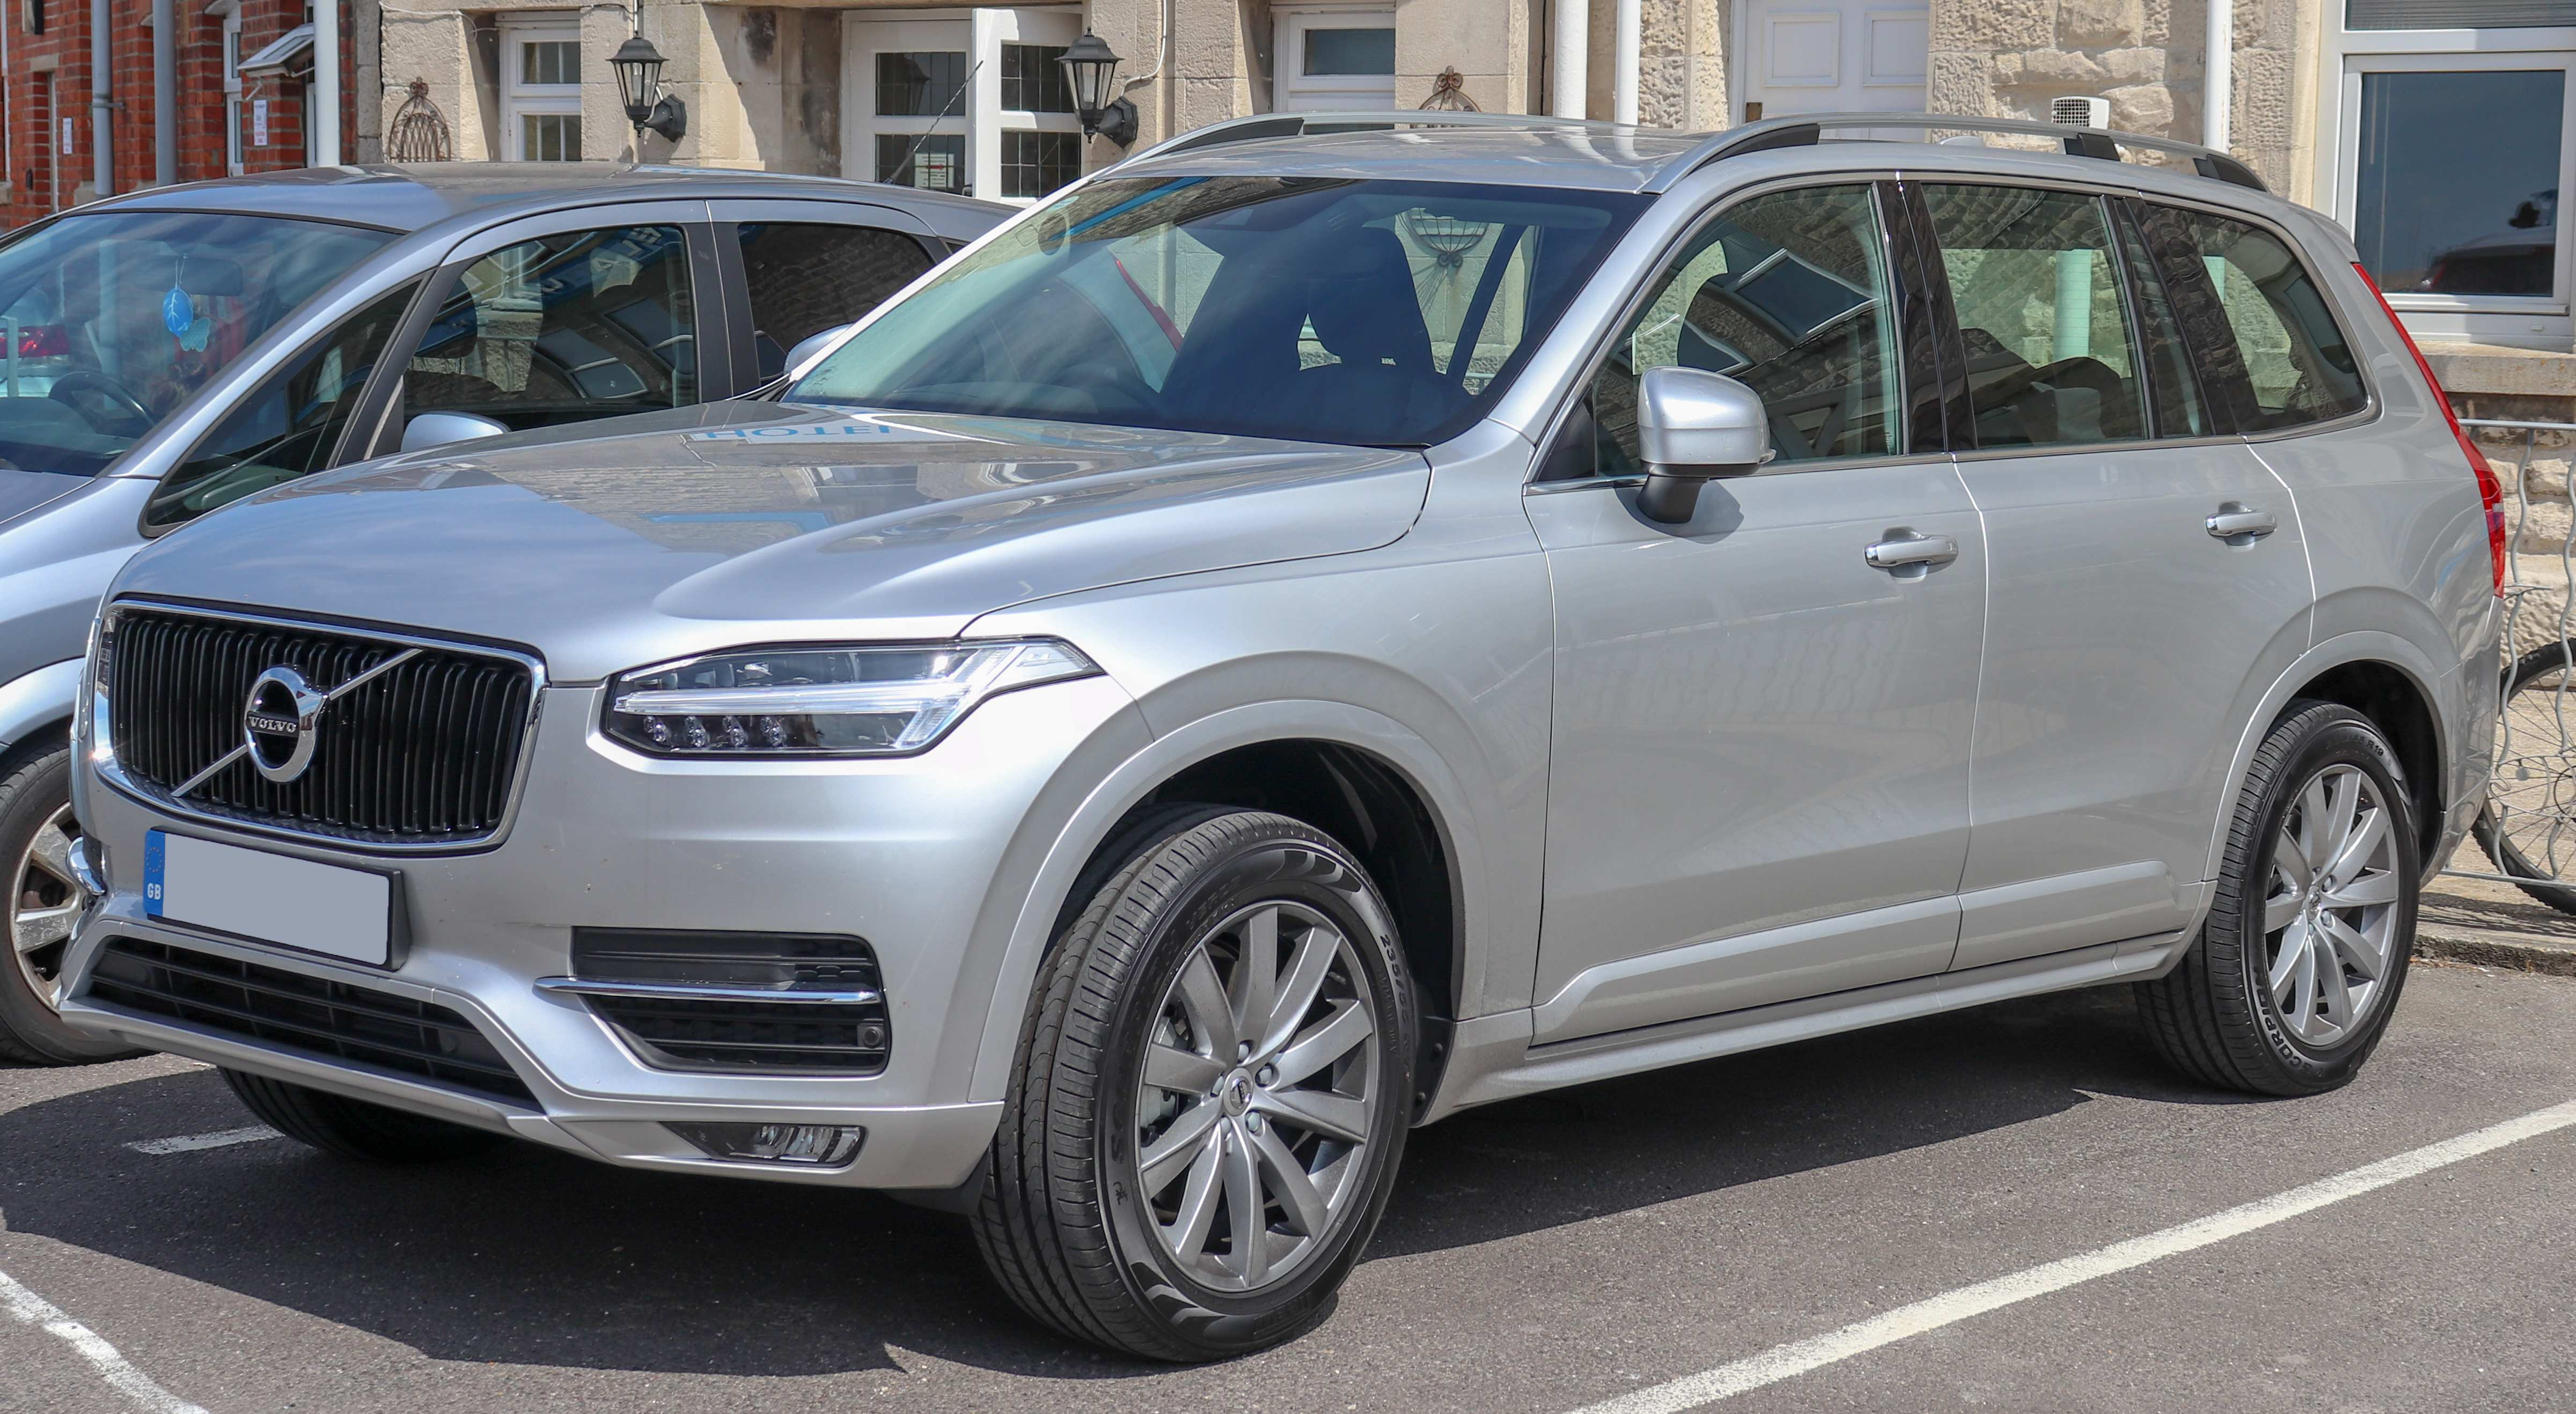 66 A 2020 Volvo Xc70 New Generation Wagon Release